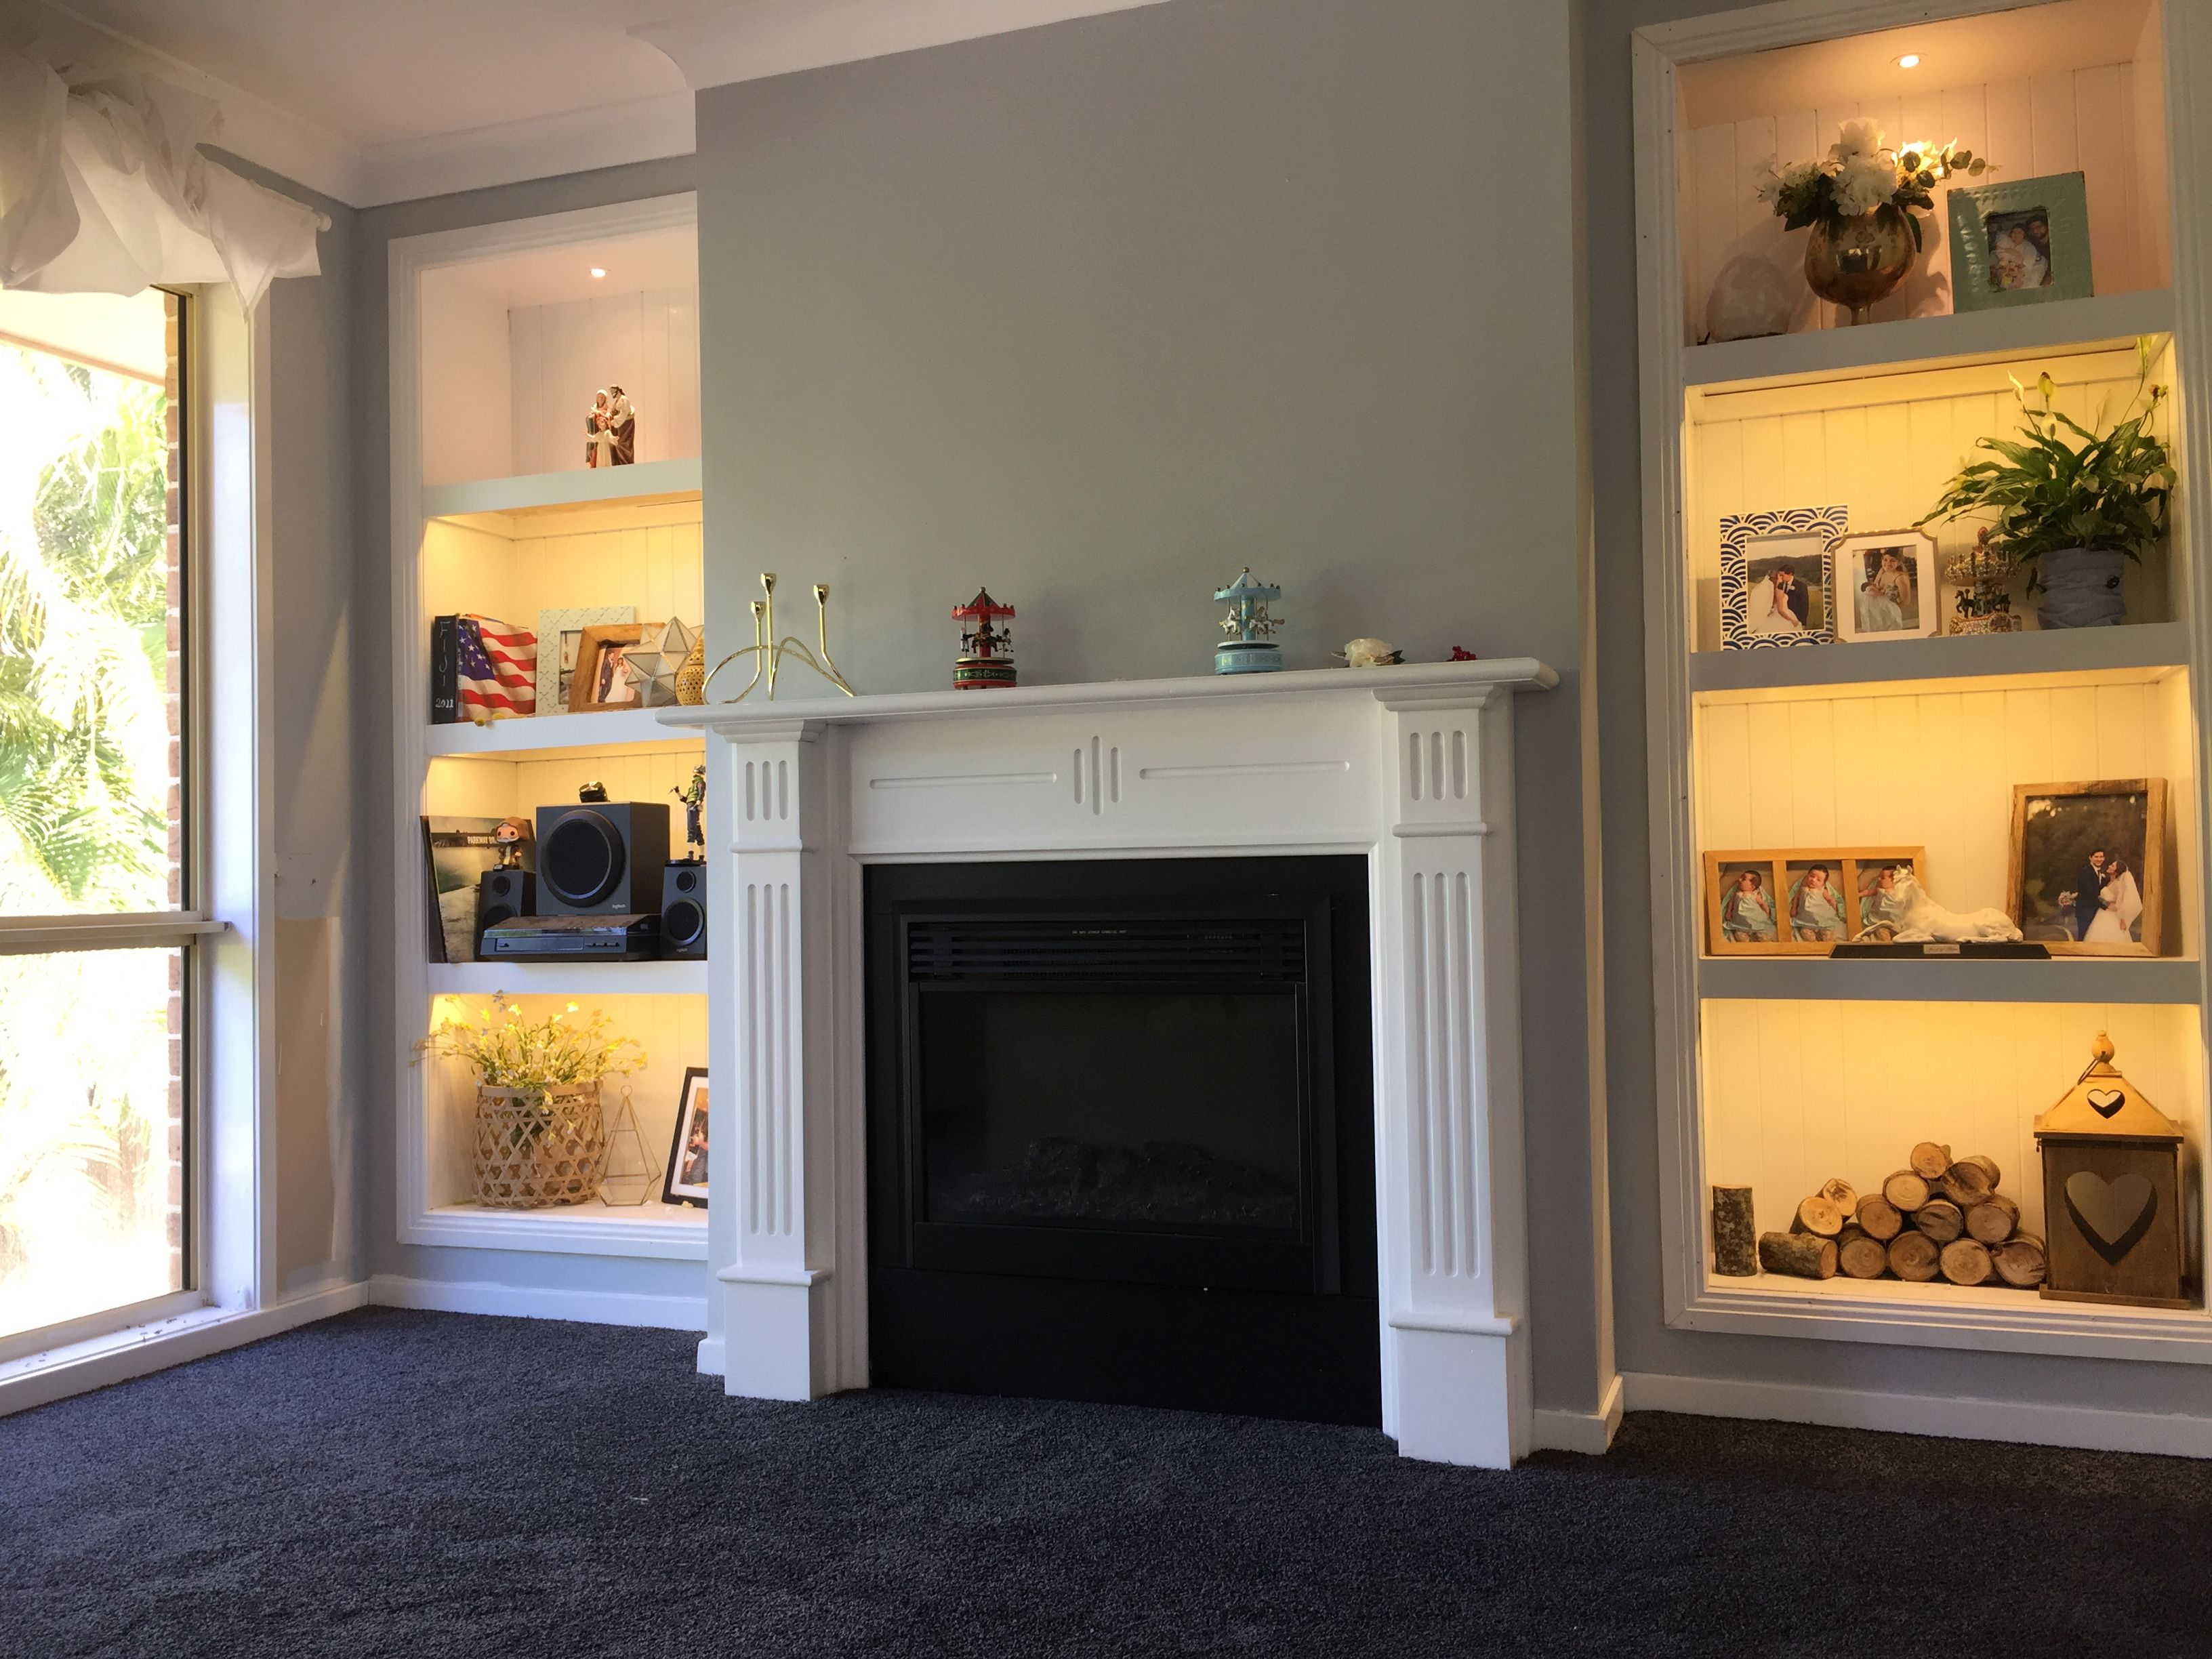 Dark Blue Carpet Grey Walls Electric Fireplace Built In Shelves Book Cases Feature Wall Strip Lighting Charcoal